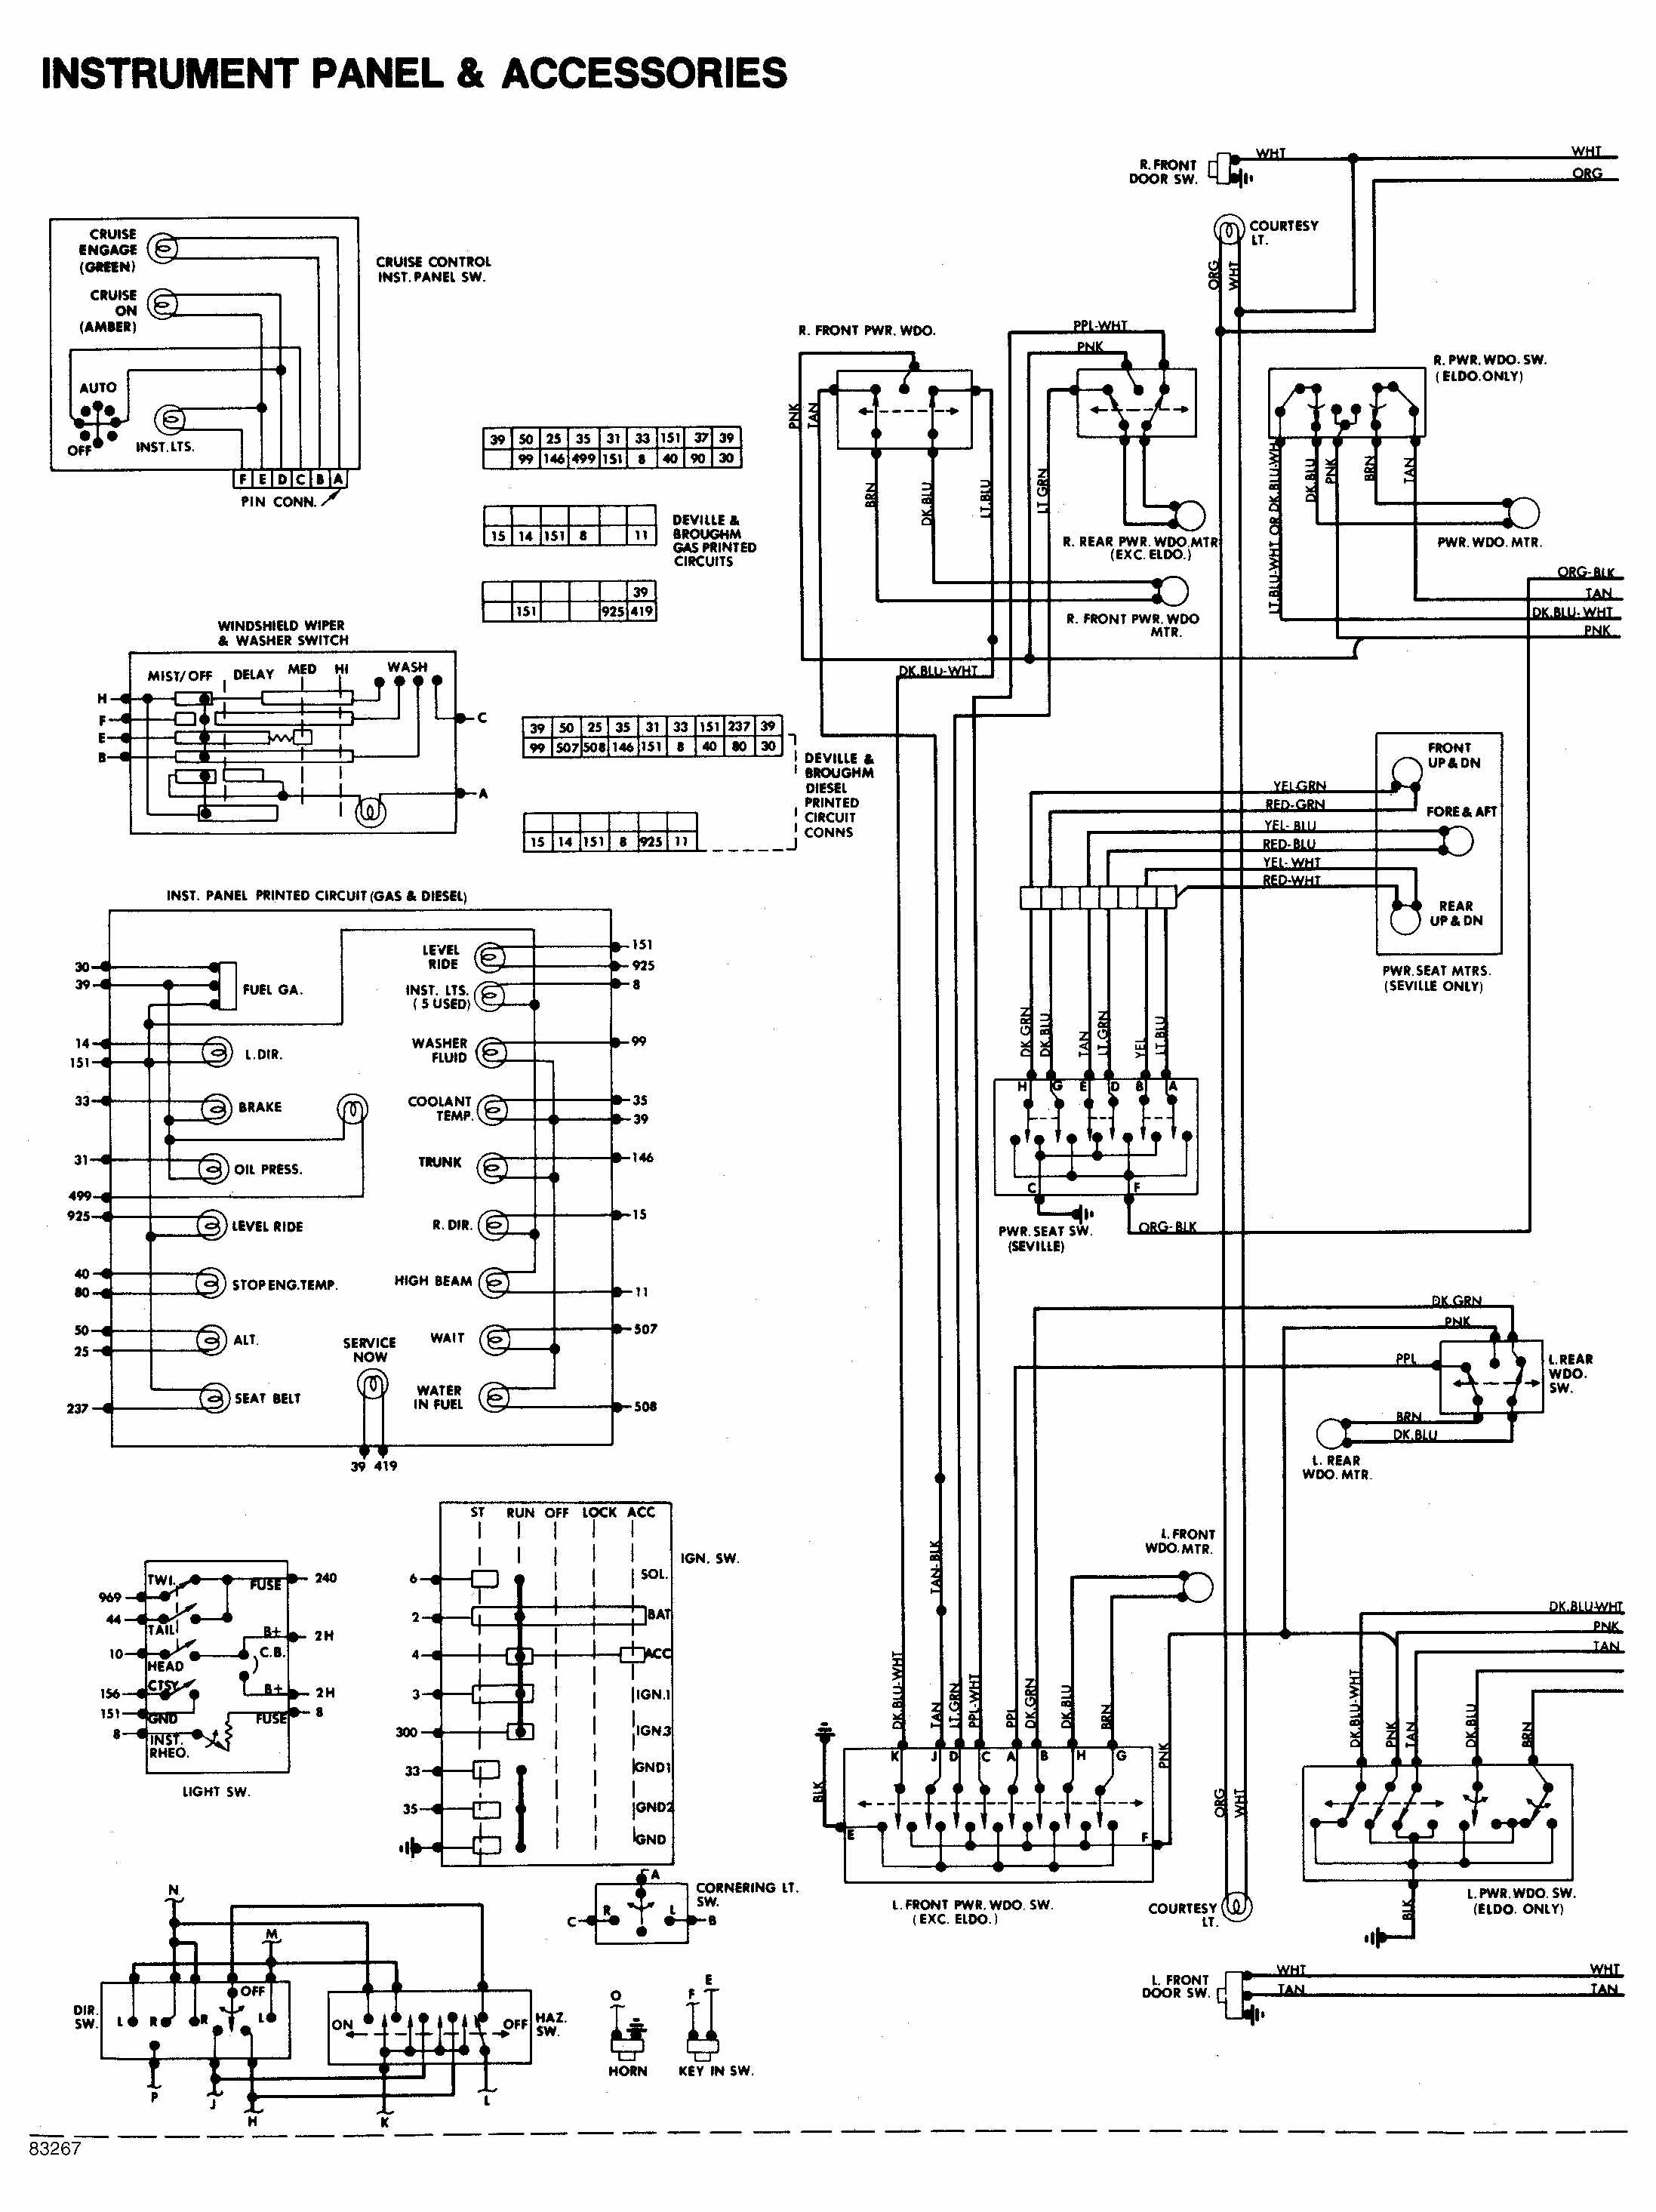 instrument panel and accessories wiring diagram of 1984 cadillac deville chevy diagrams 92 cadillac deville wiring diagrams at bayanpartner.co